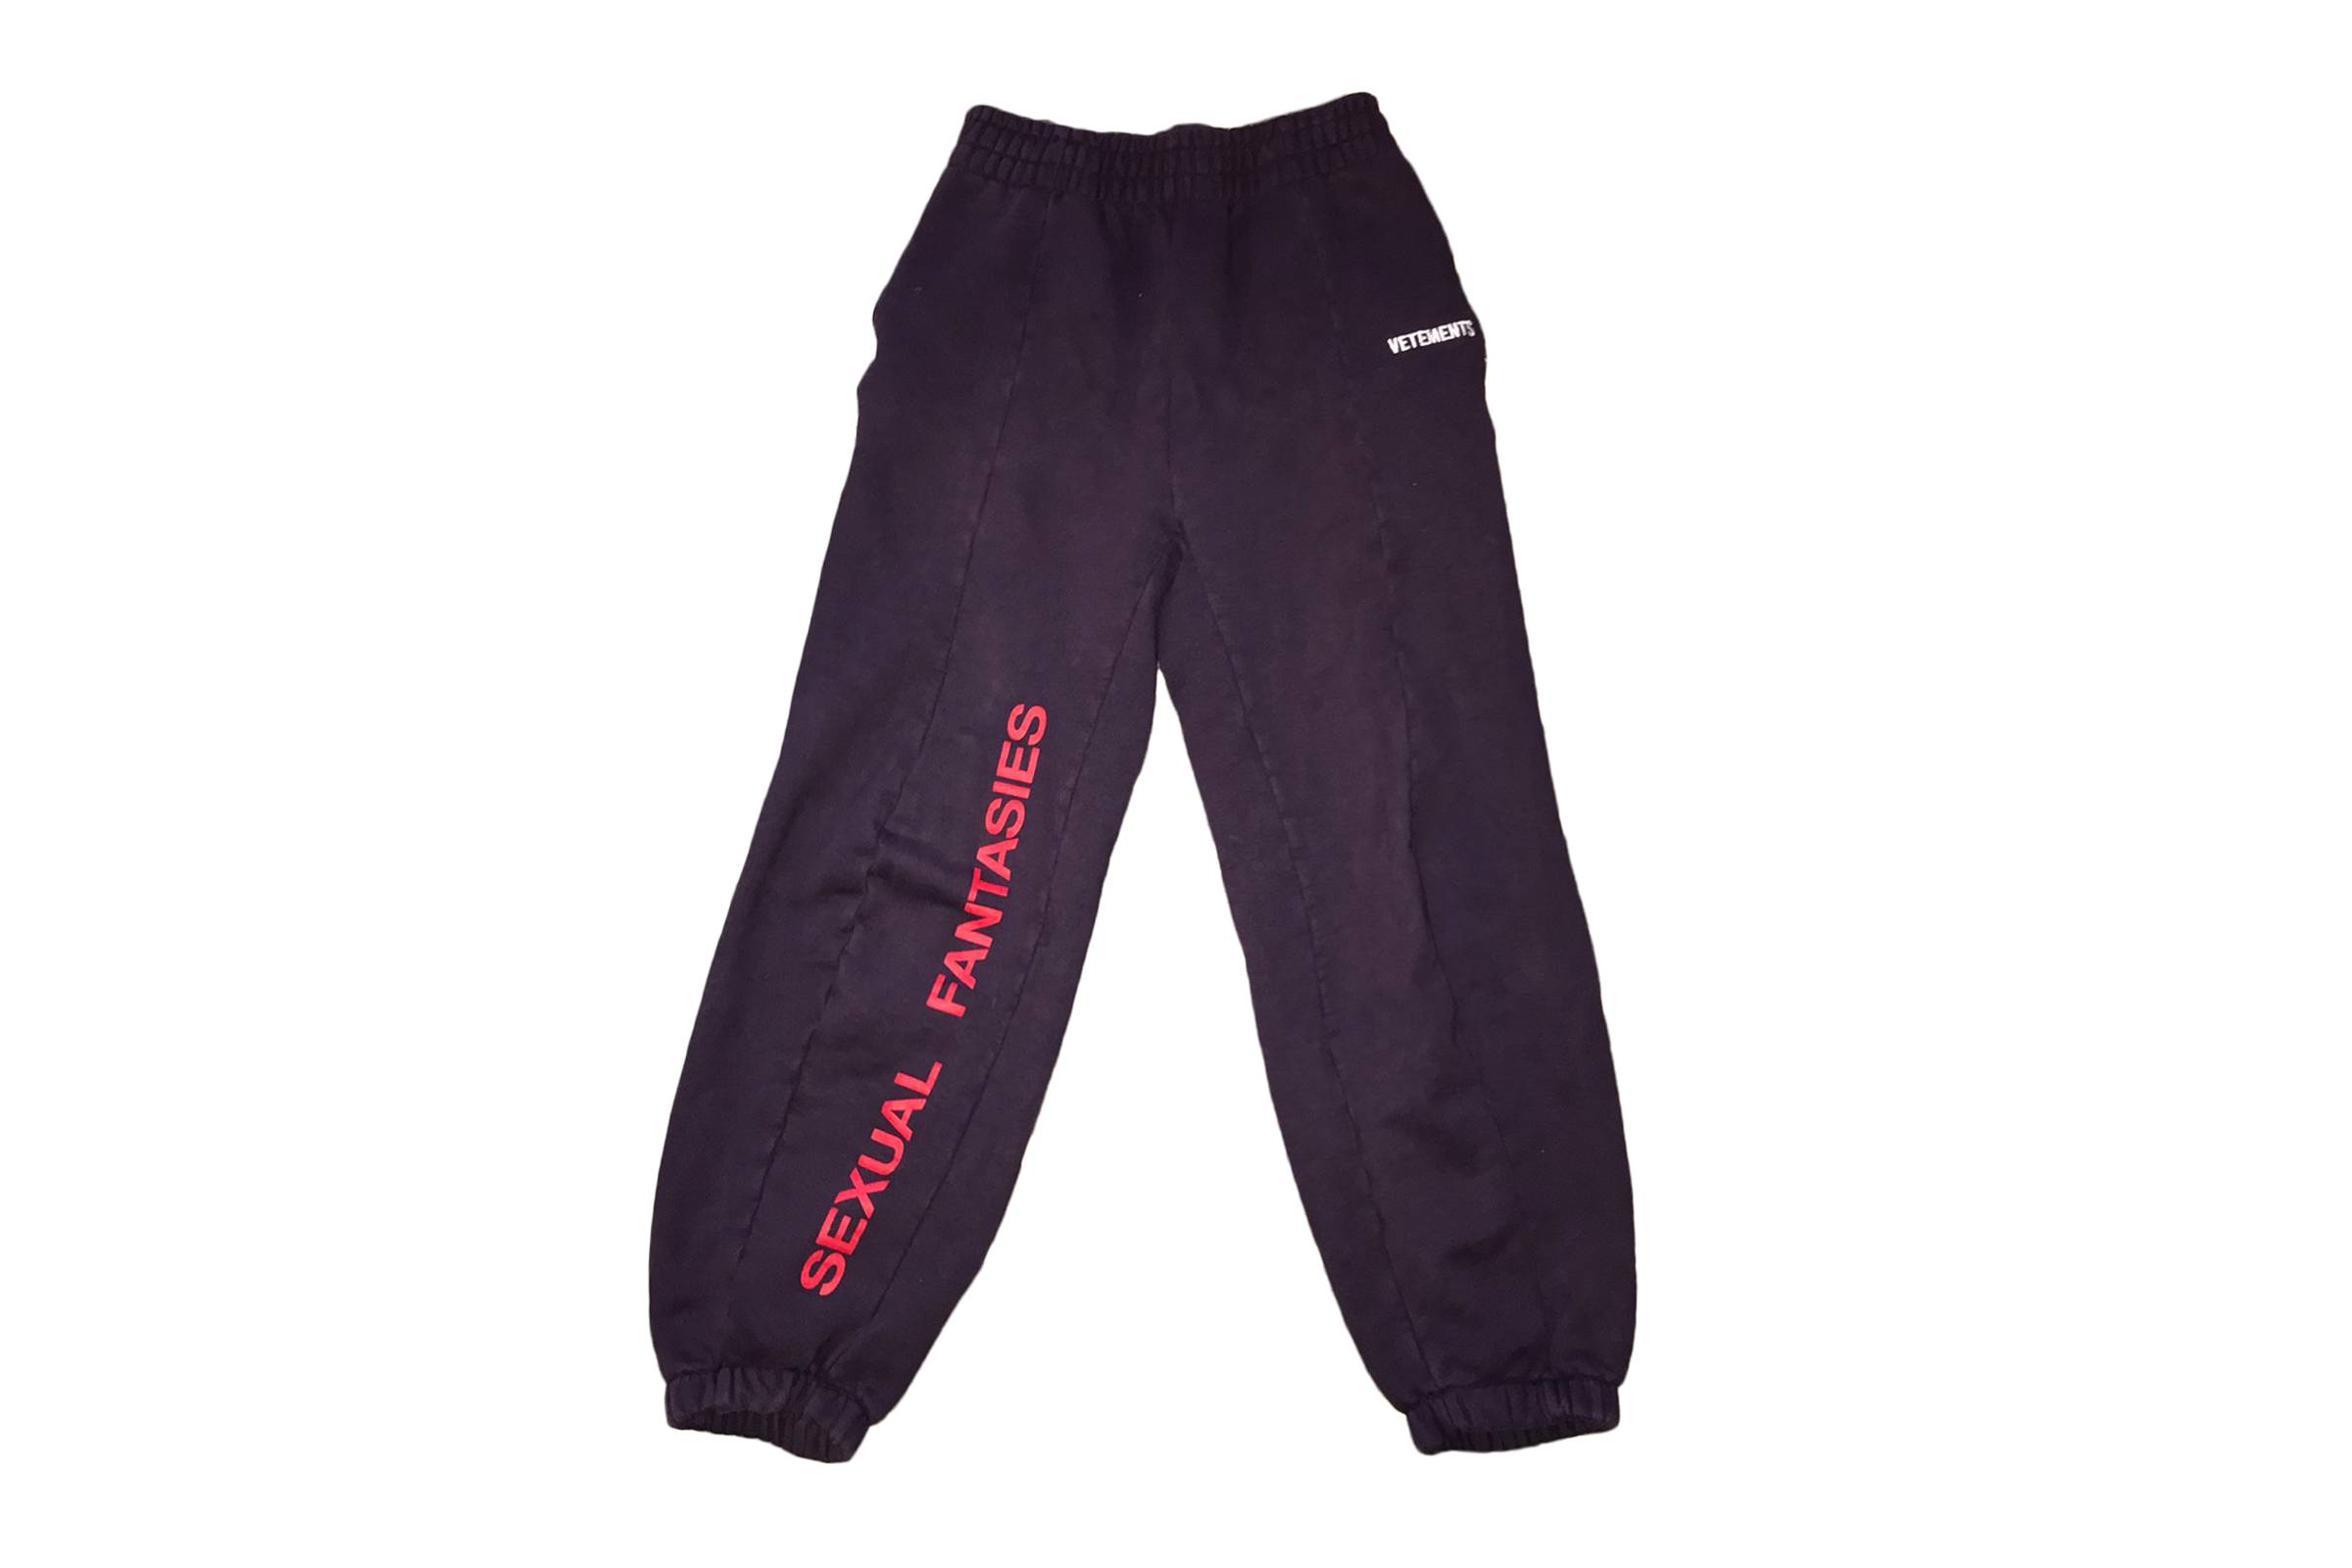 Vetements Fall/Winter 2017 Sexual Fantasies Sweatpants